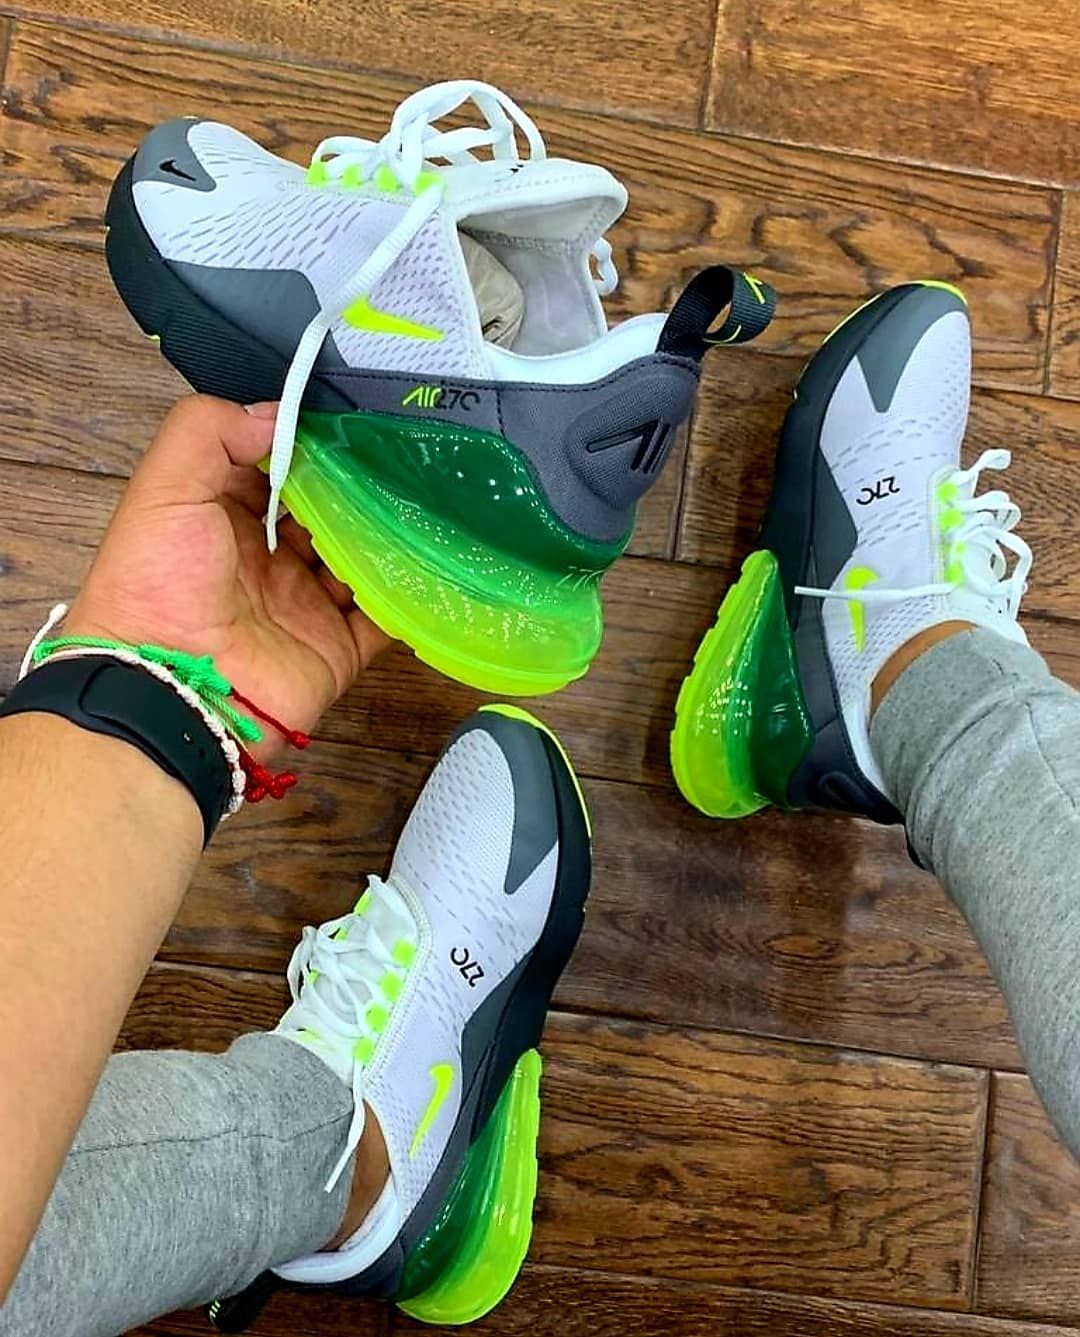 facc52e80c Tag a friend who would rock these @nike air max 270s platinum tint/volt  Limited sizes available Dm us to order #nikea... - CoinOku